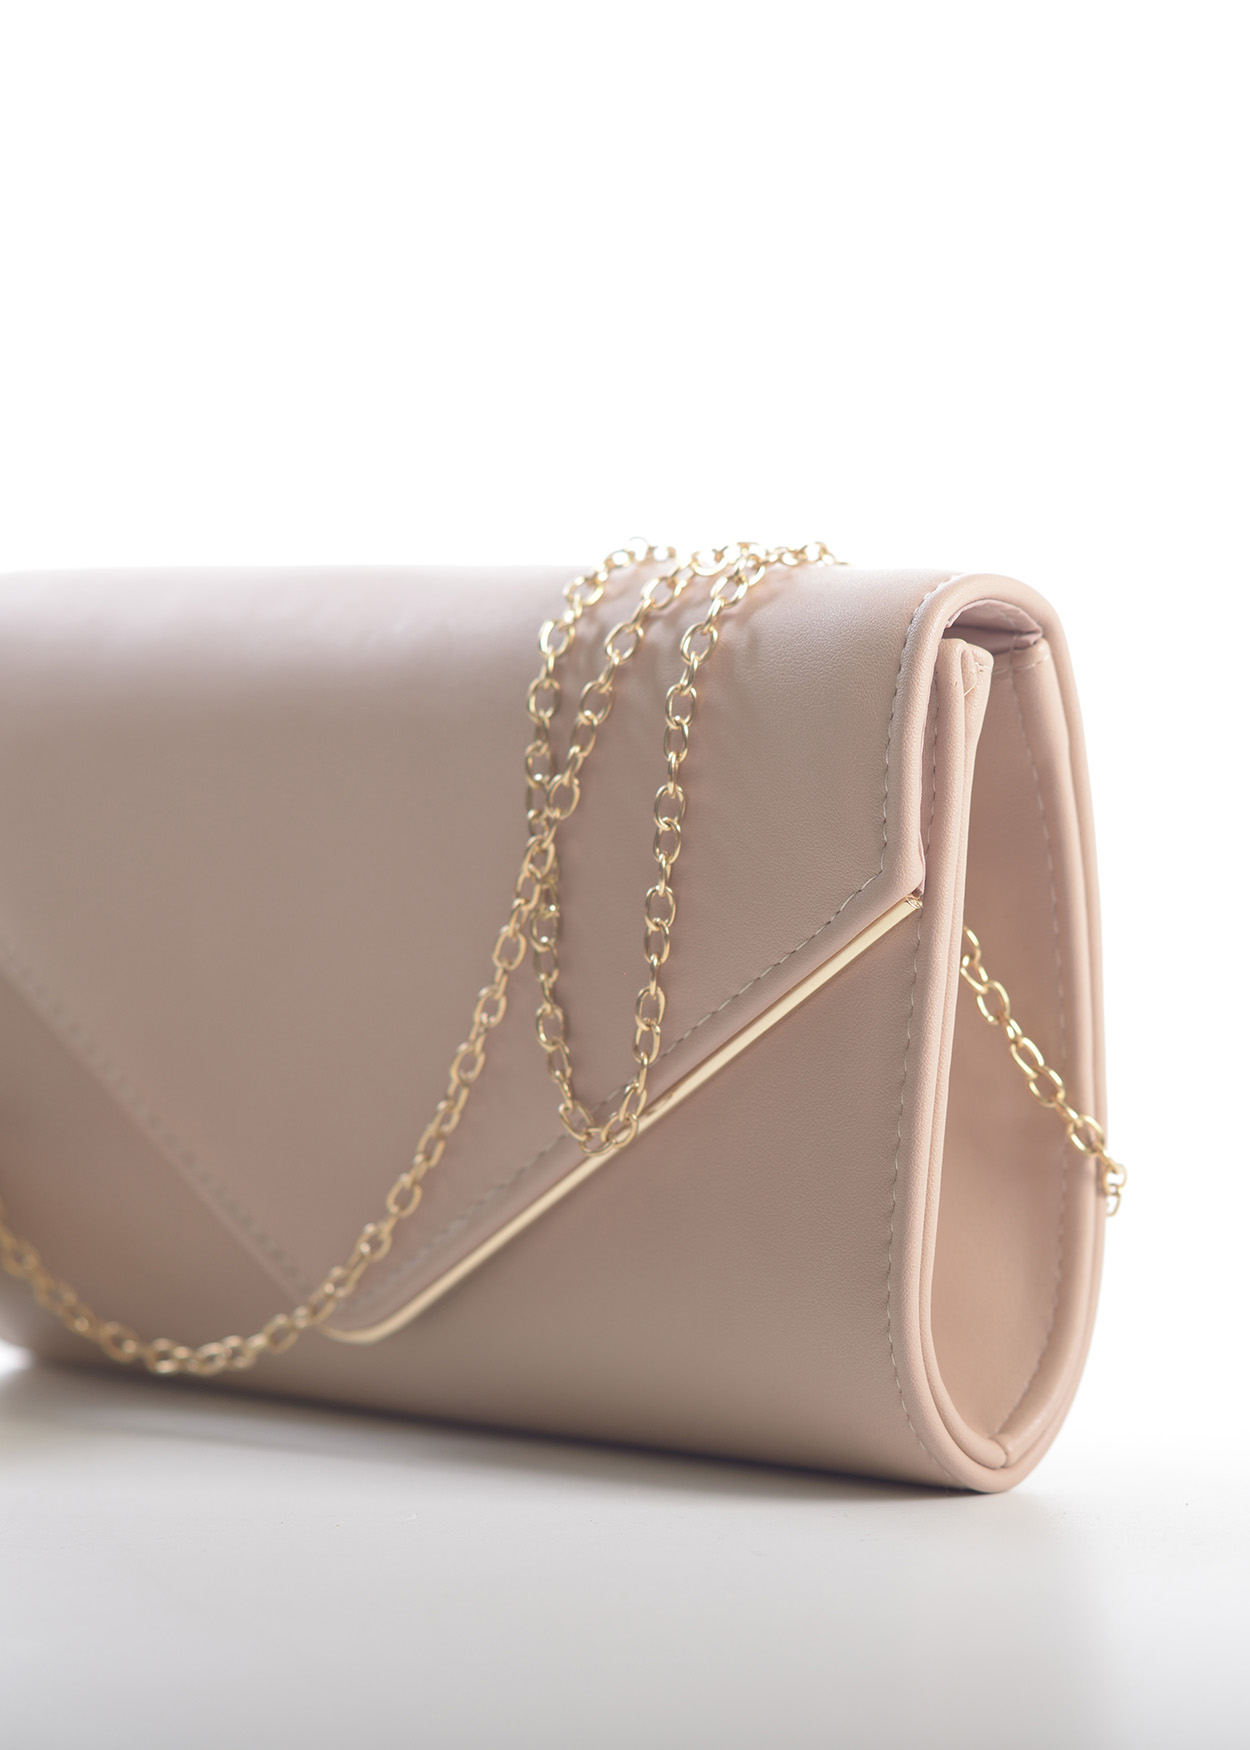 Hot Nude Clutch Bags Images